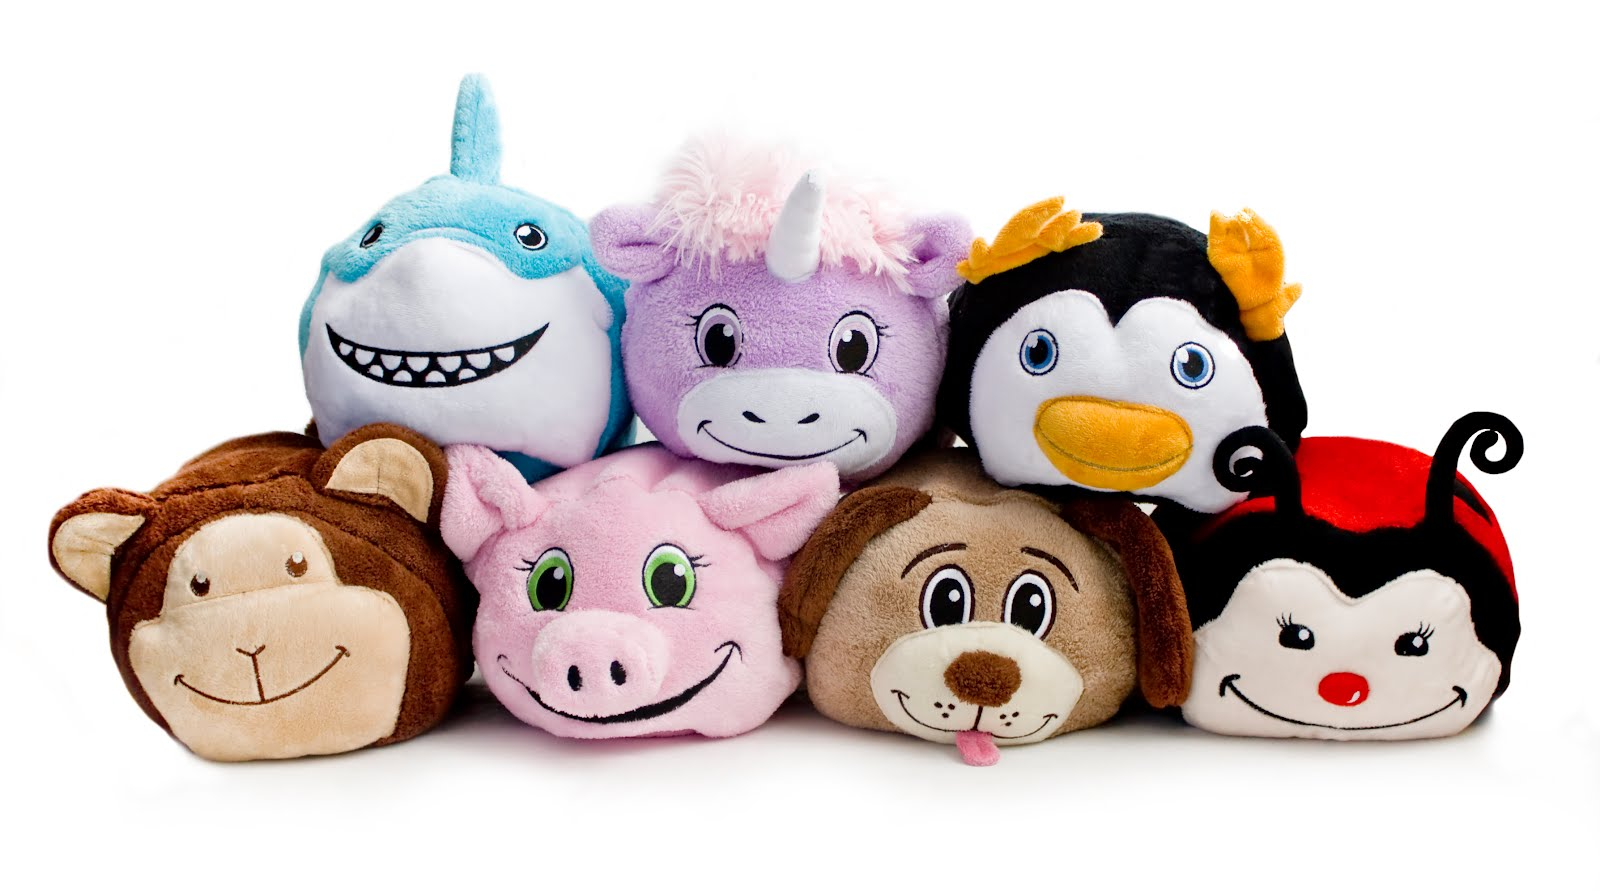 Creative Parenting Product Review My Comfy Critters